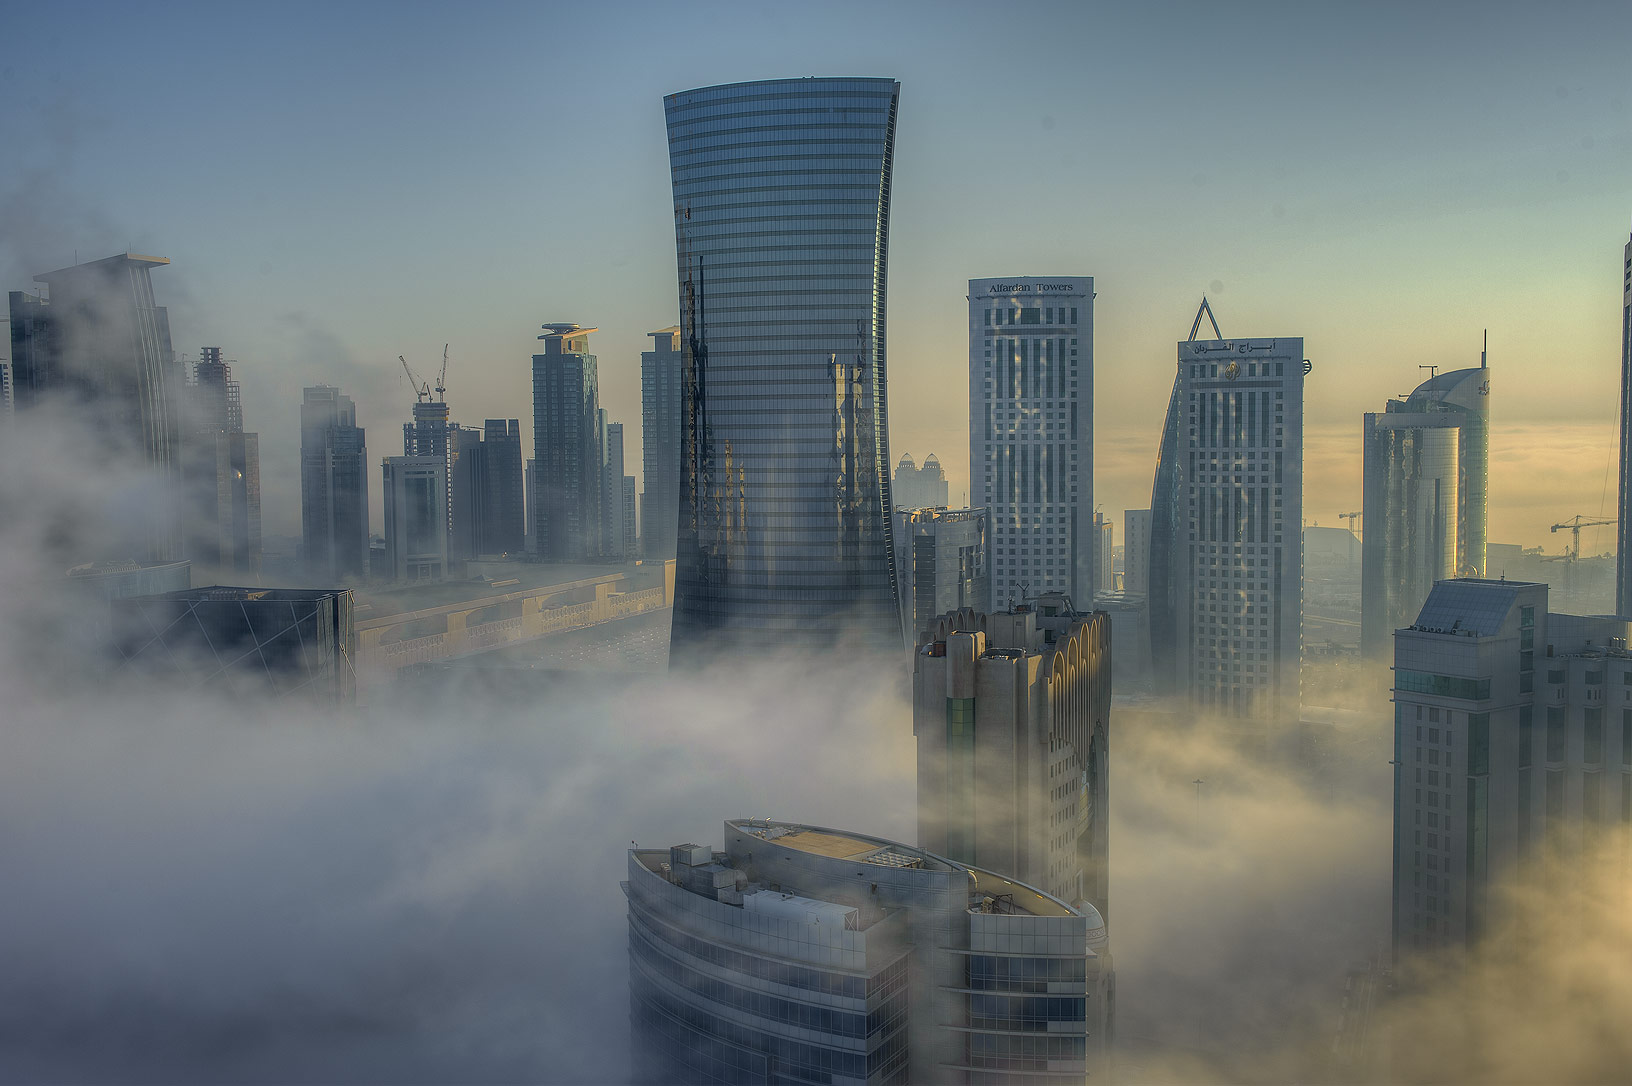 Patchy fog from a balcony of Room 1604 of Dareen Tower in West Bay. Doha, Qatar